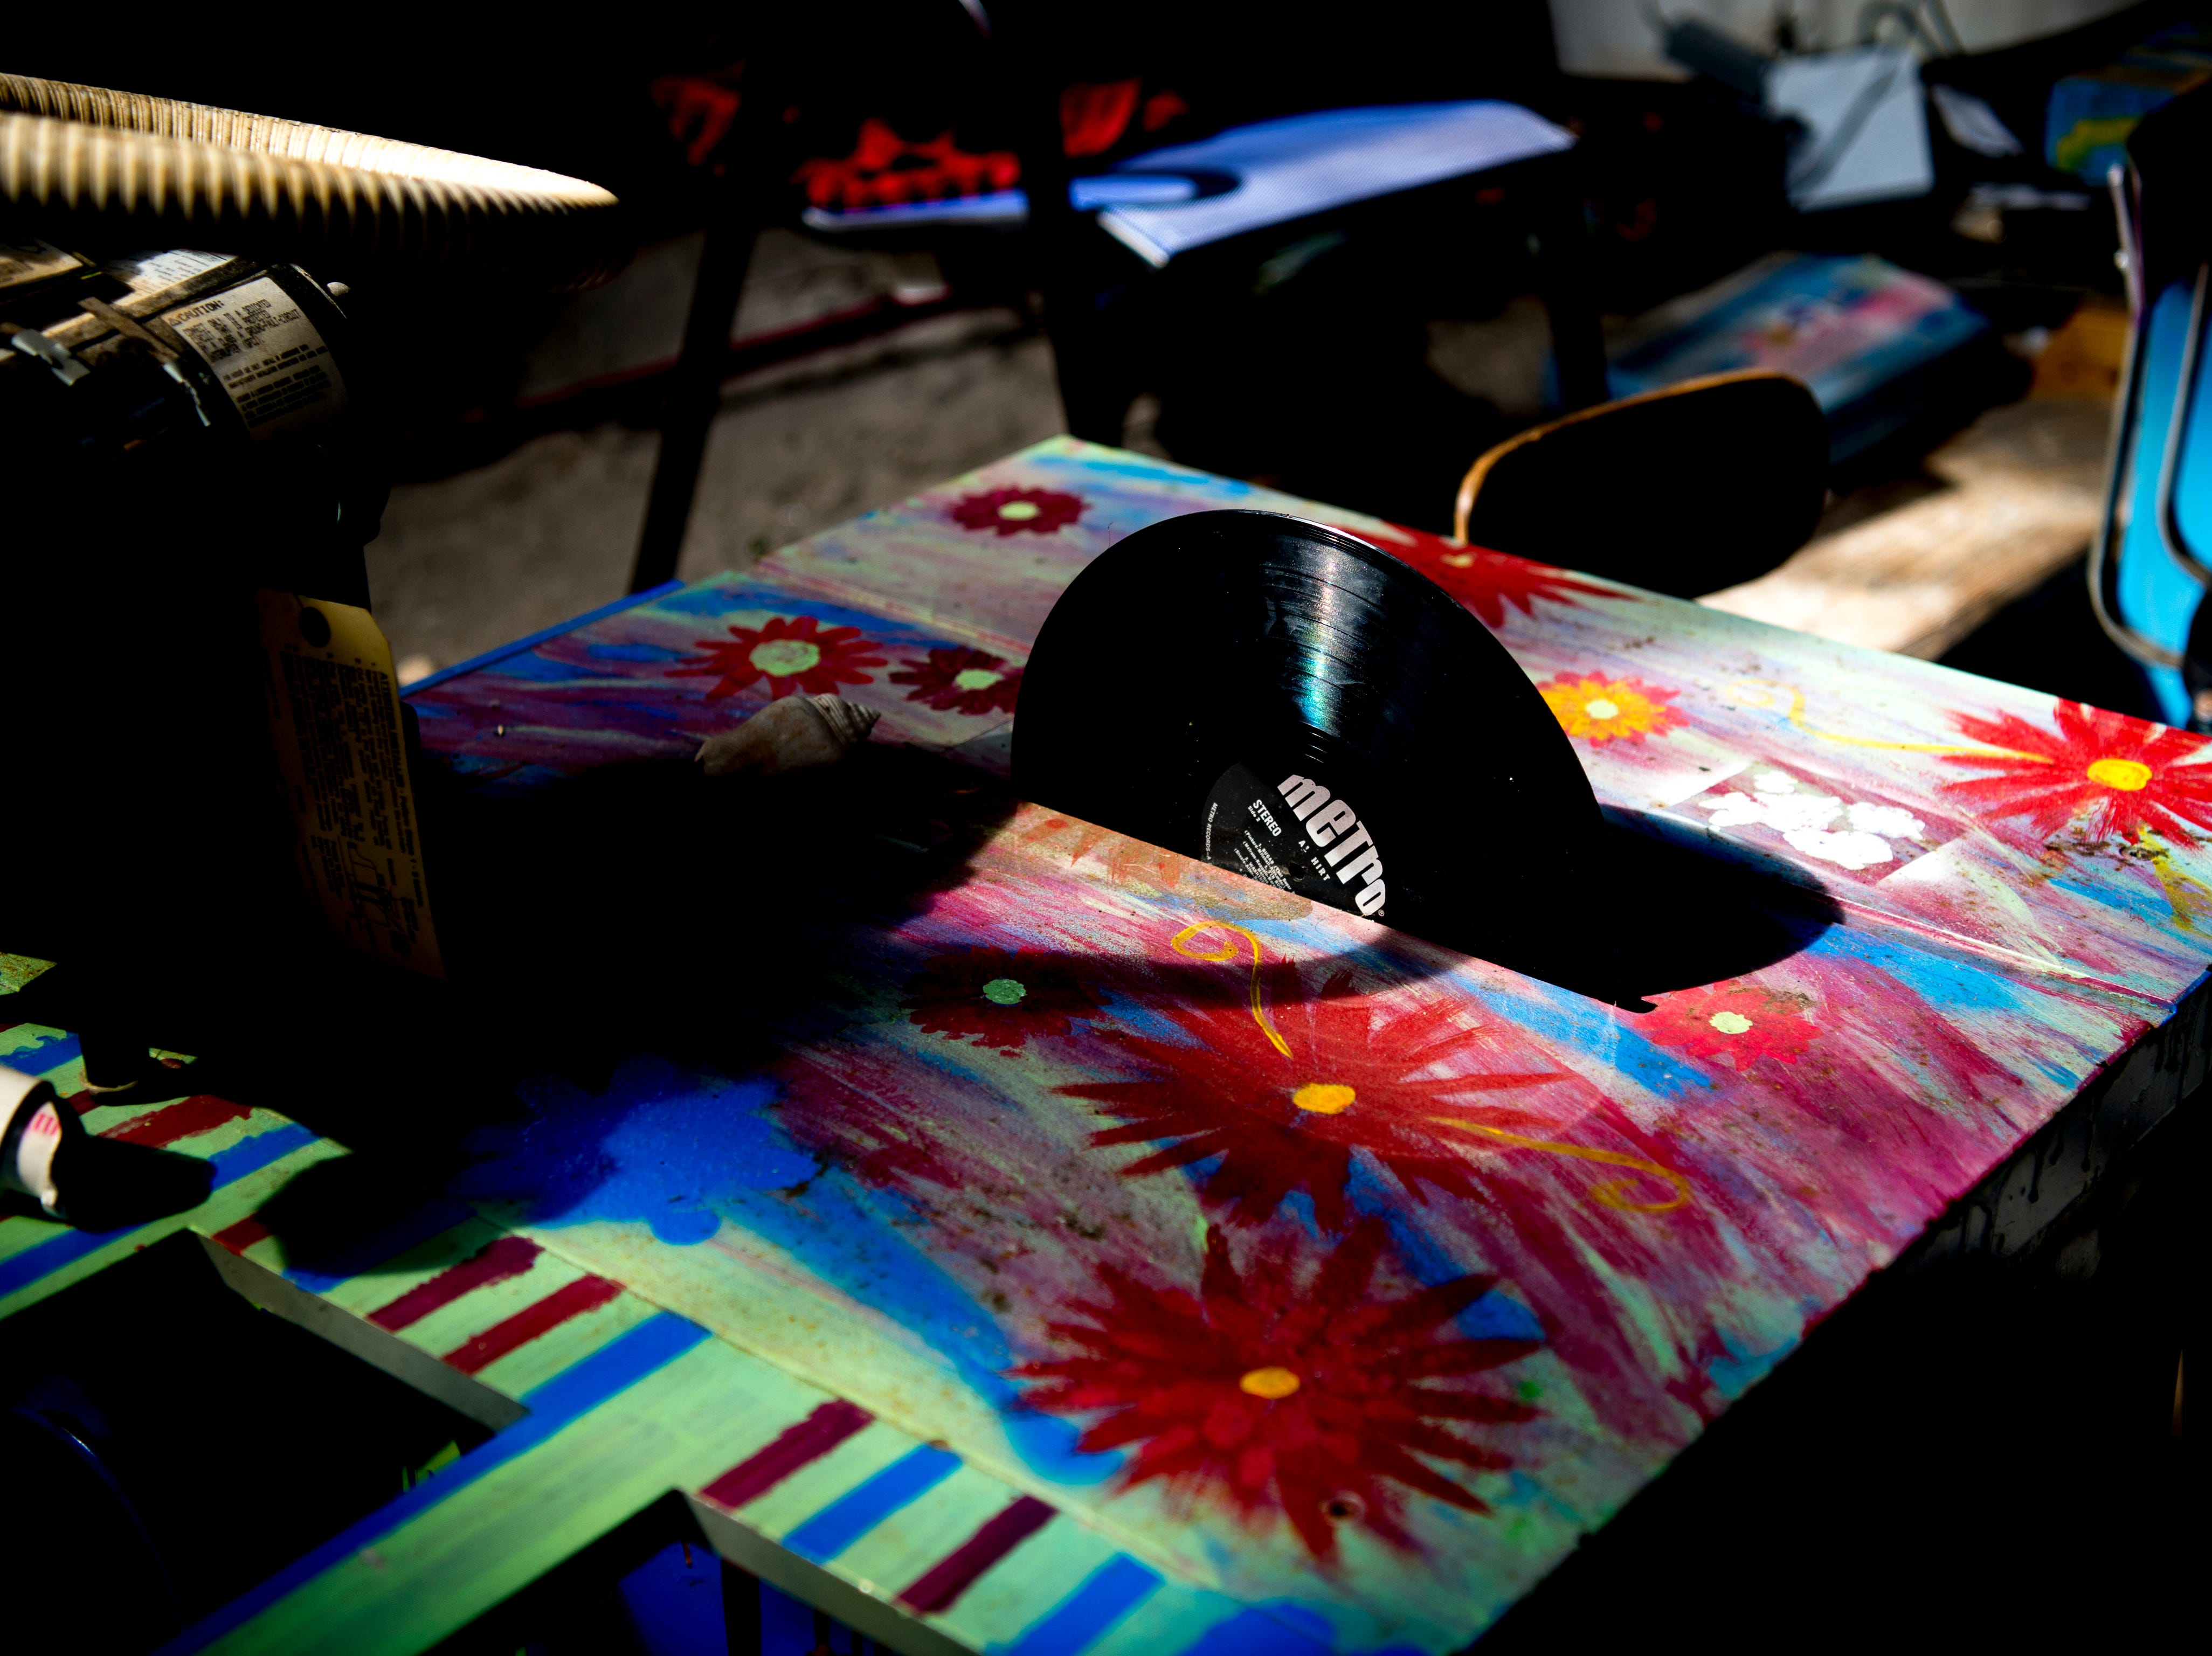 A cabinet saw is replaced with a vinyl record at Bar Marley in Knoxville, Tennessee on Thursday, February 14, 2019. The Caribbean-themed Bar Marley is facing possible acquisition and condemnation by KCDC due to code violations.